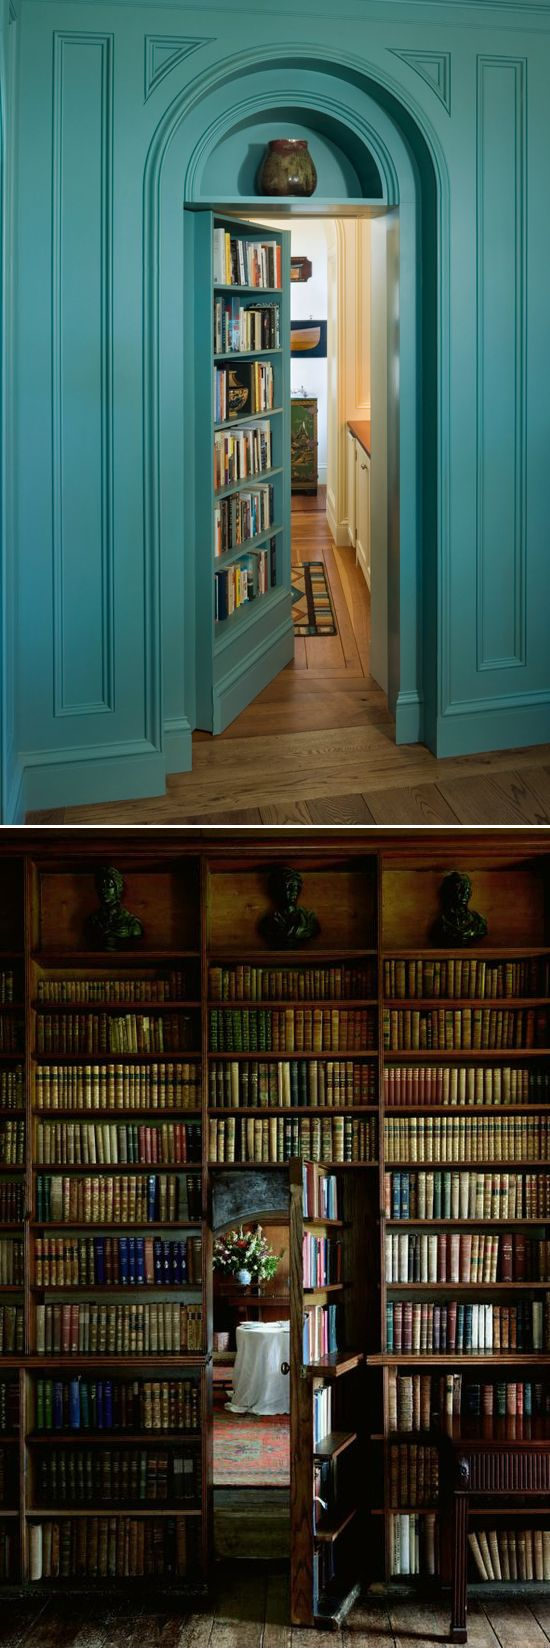 Holy crap!: Dreams Houses, Hidden Doors, Books Rooms, Secret Passage, Secret Doors, Bookca Doors, Hidden Rooms, Secret Rooms, Bookcases Doors